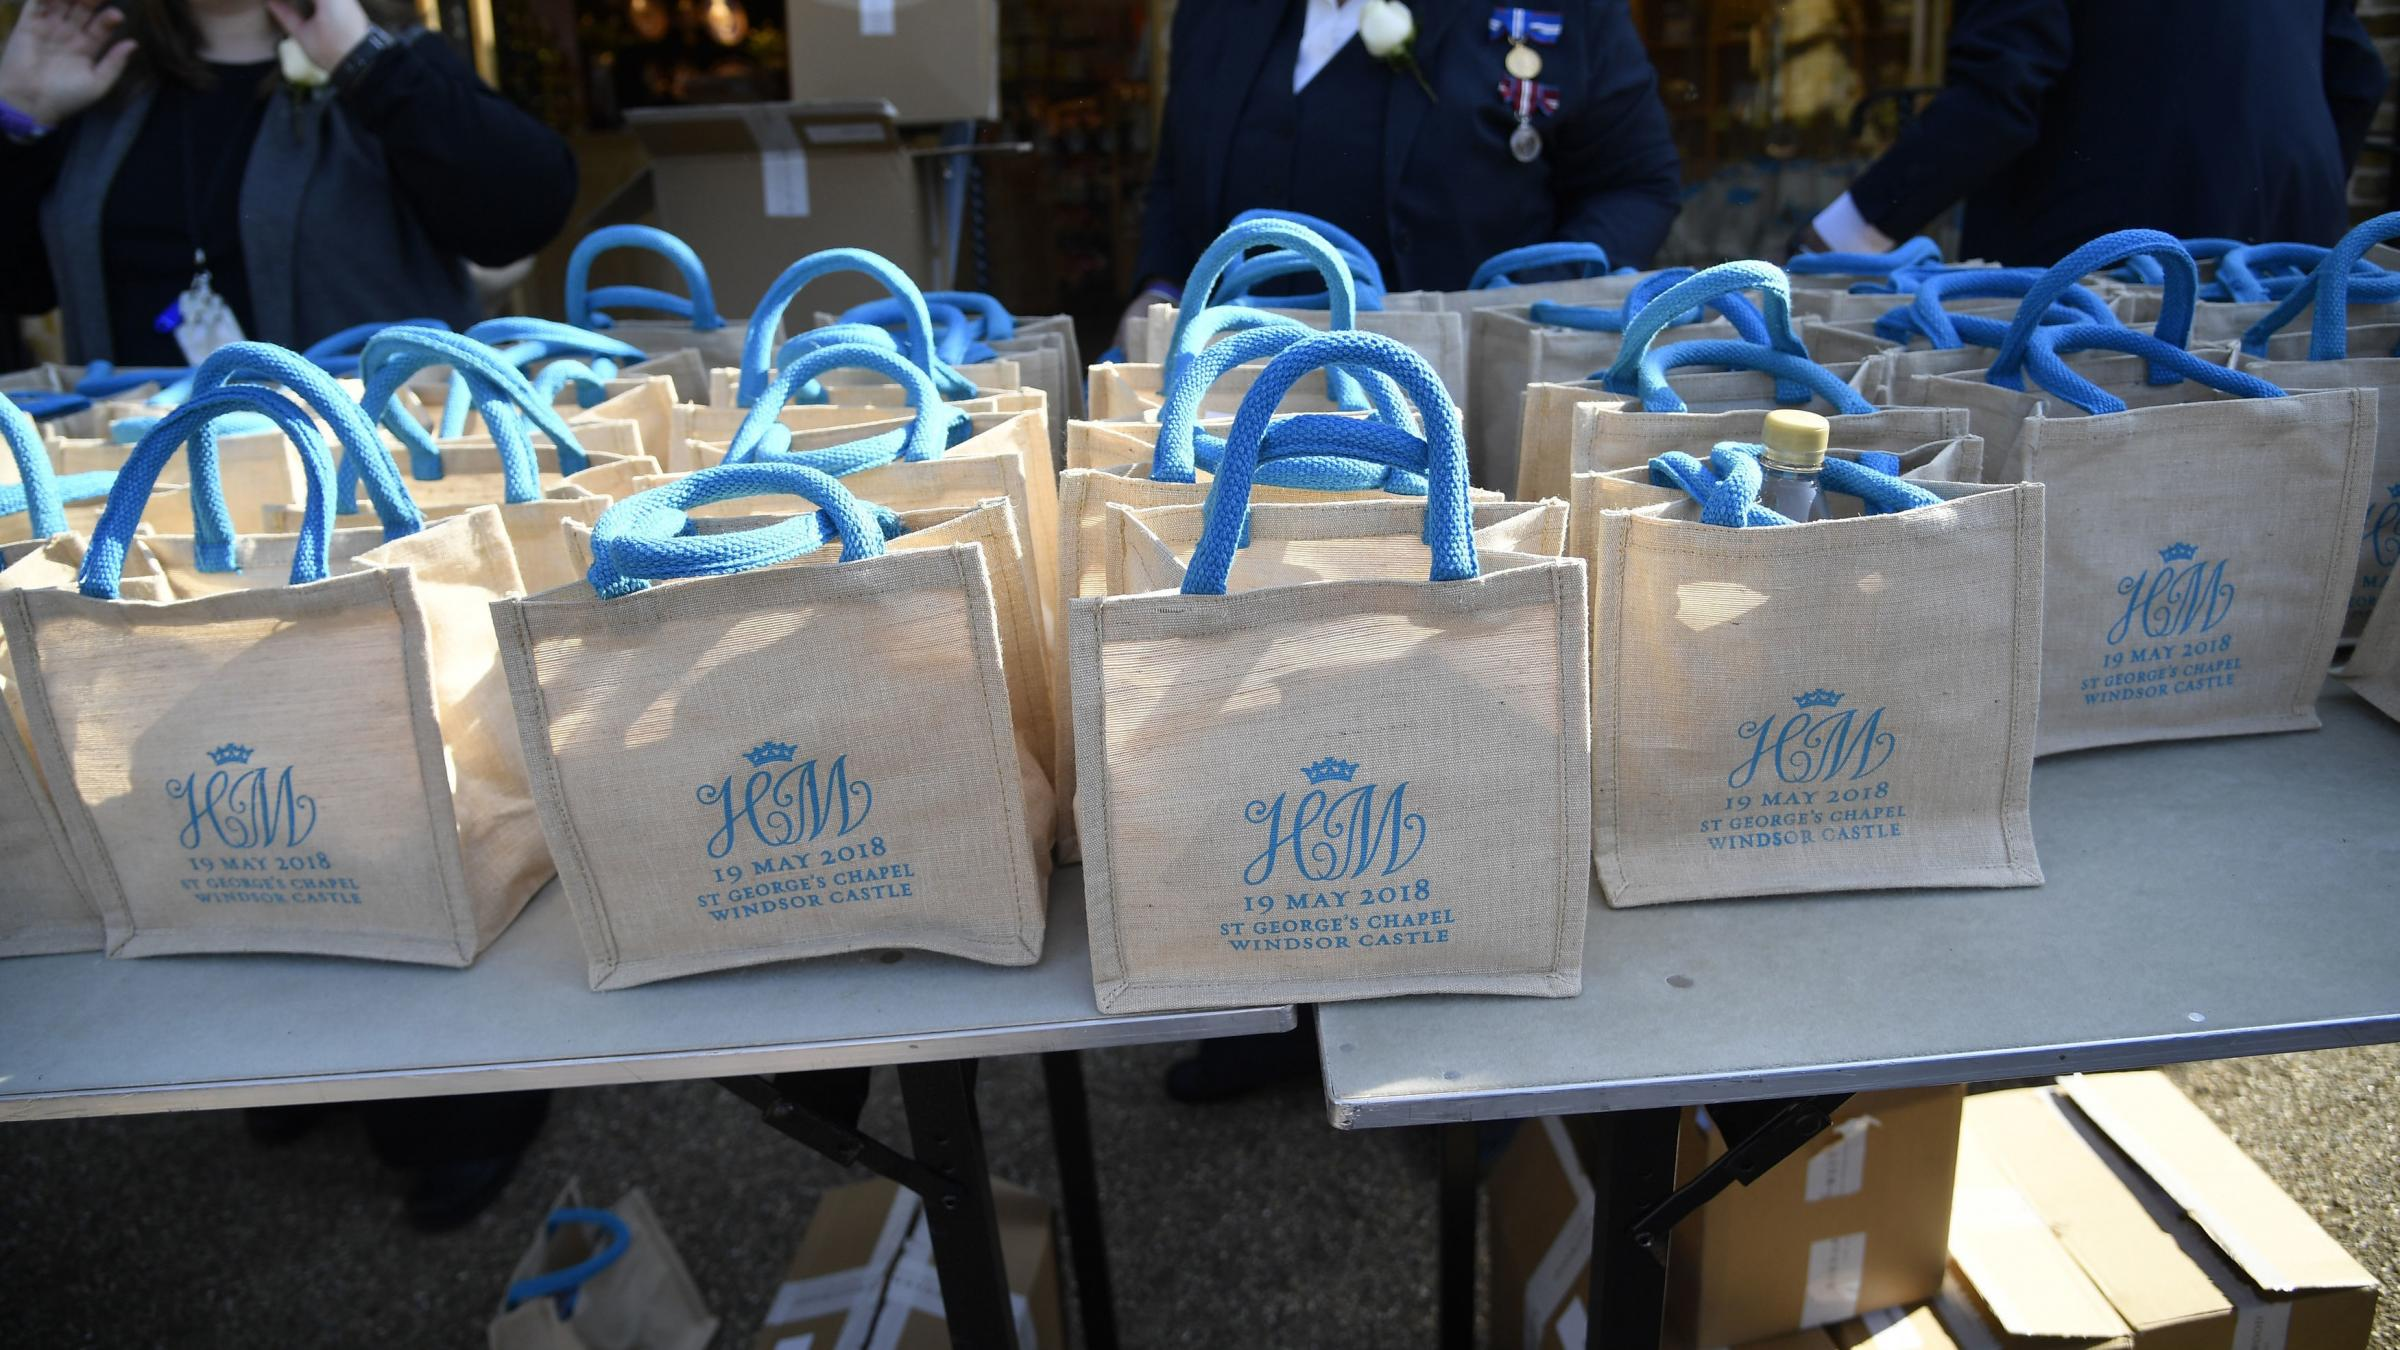 Royal wedding guests sell gift bags online